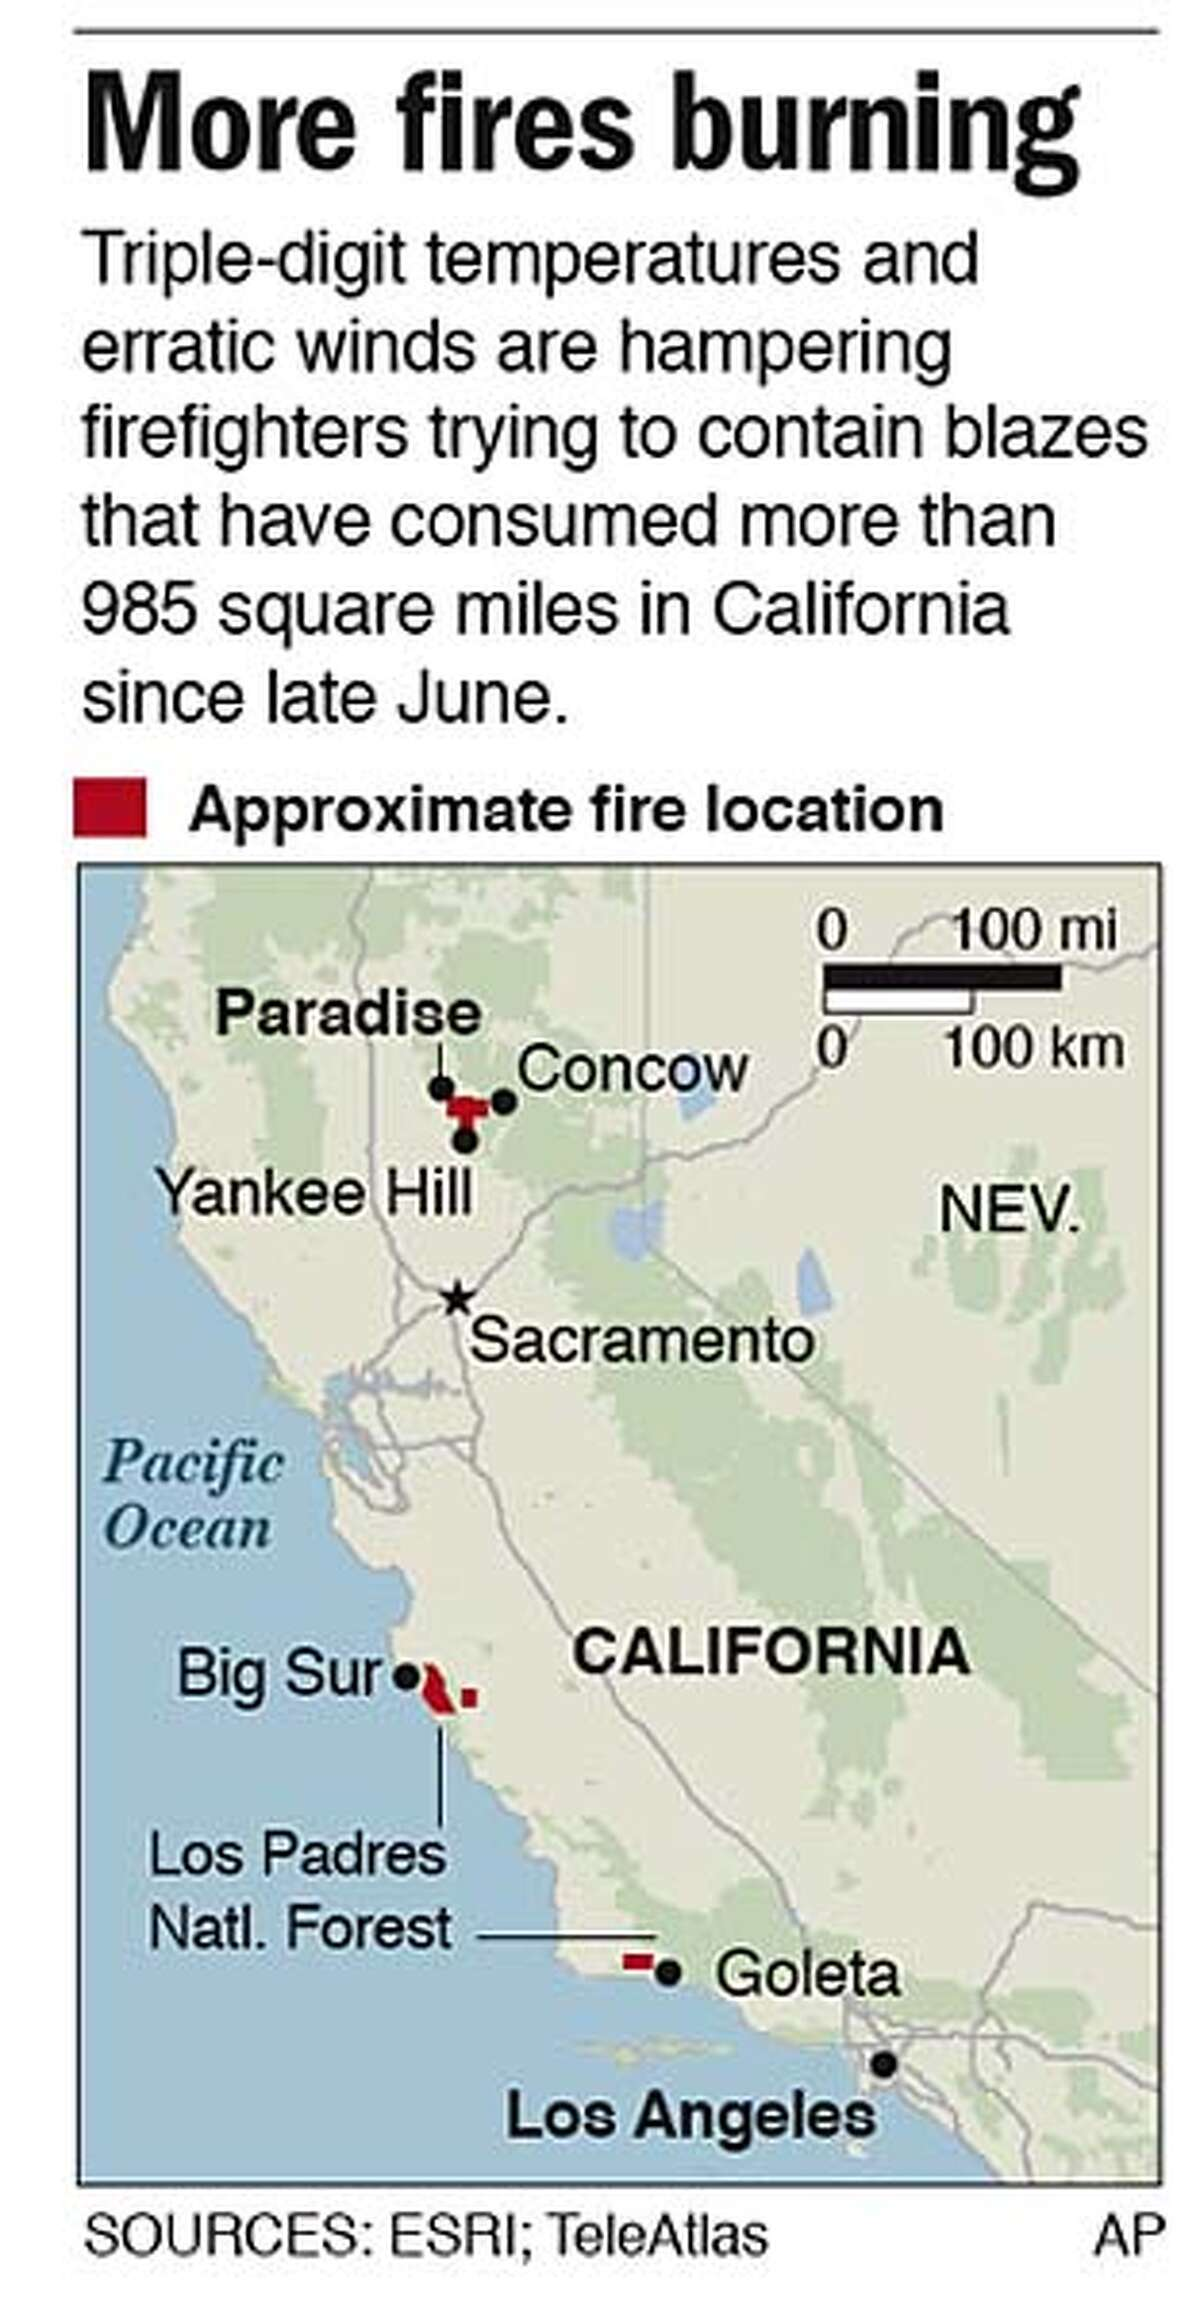 Map of wildfires in California. Associated Press graphic by William Castello